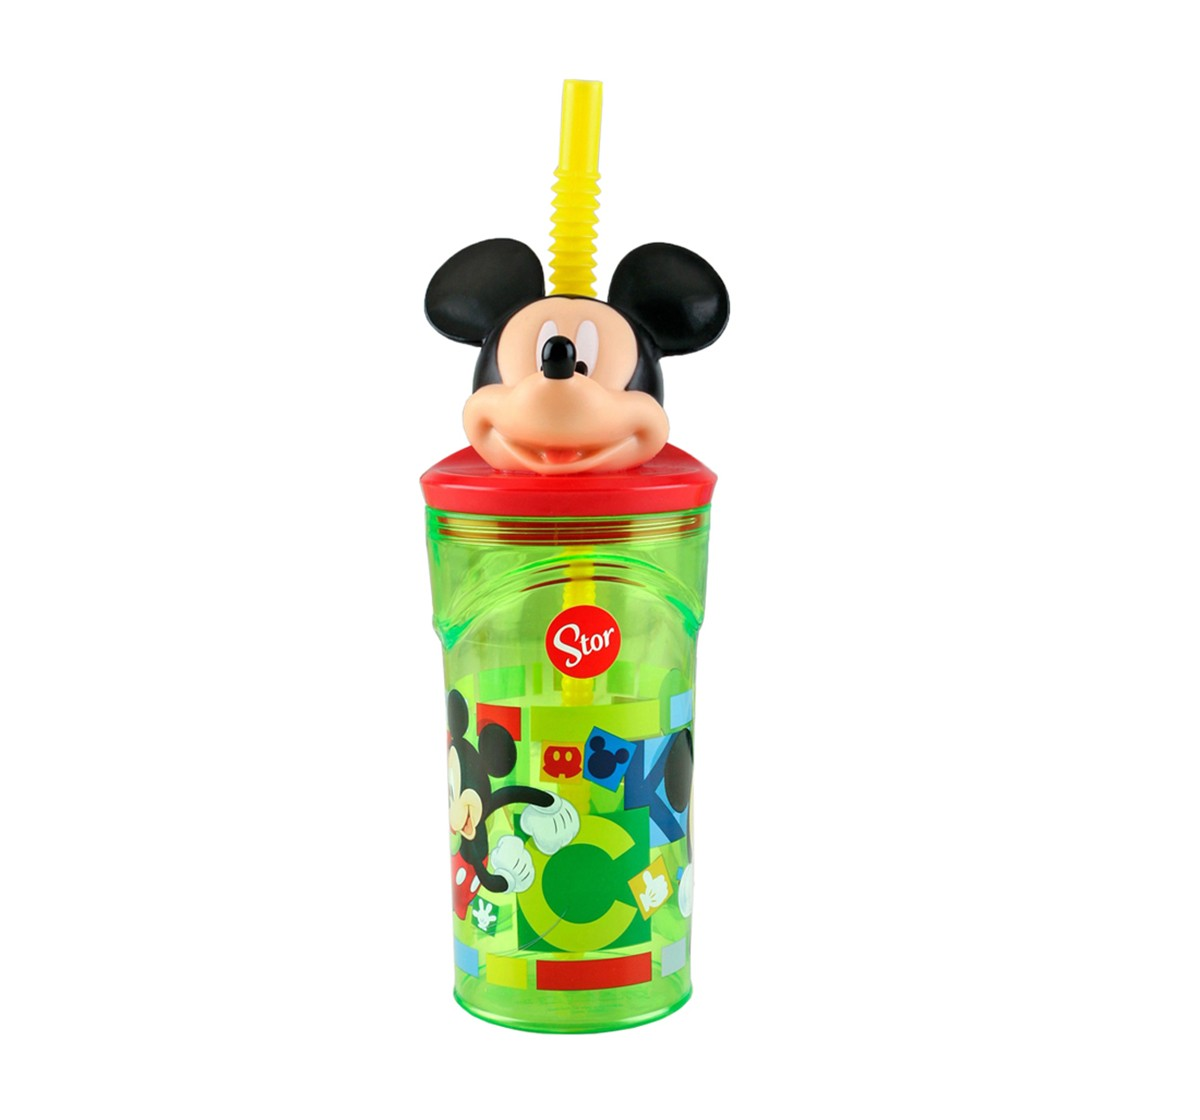 Disney Disney Stor 3D Figurine Tumbler Mickey Watercolours ,Quirky Soft Toys for Kids age 3Y+ - 23 Cm, 360 ml